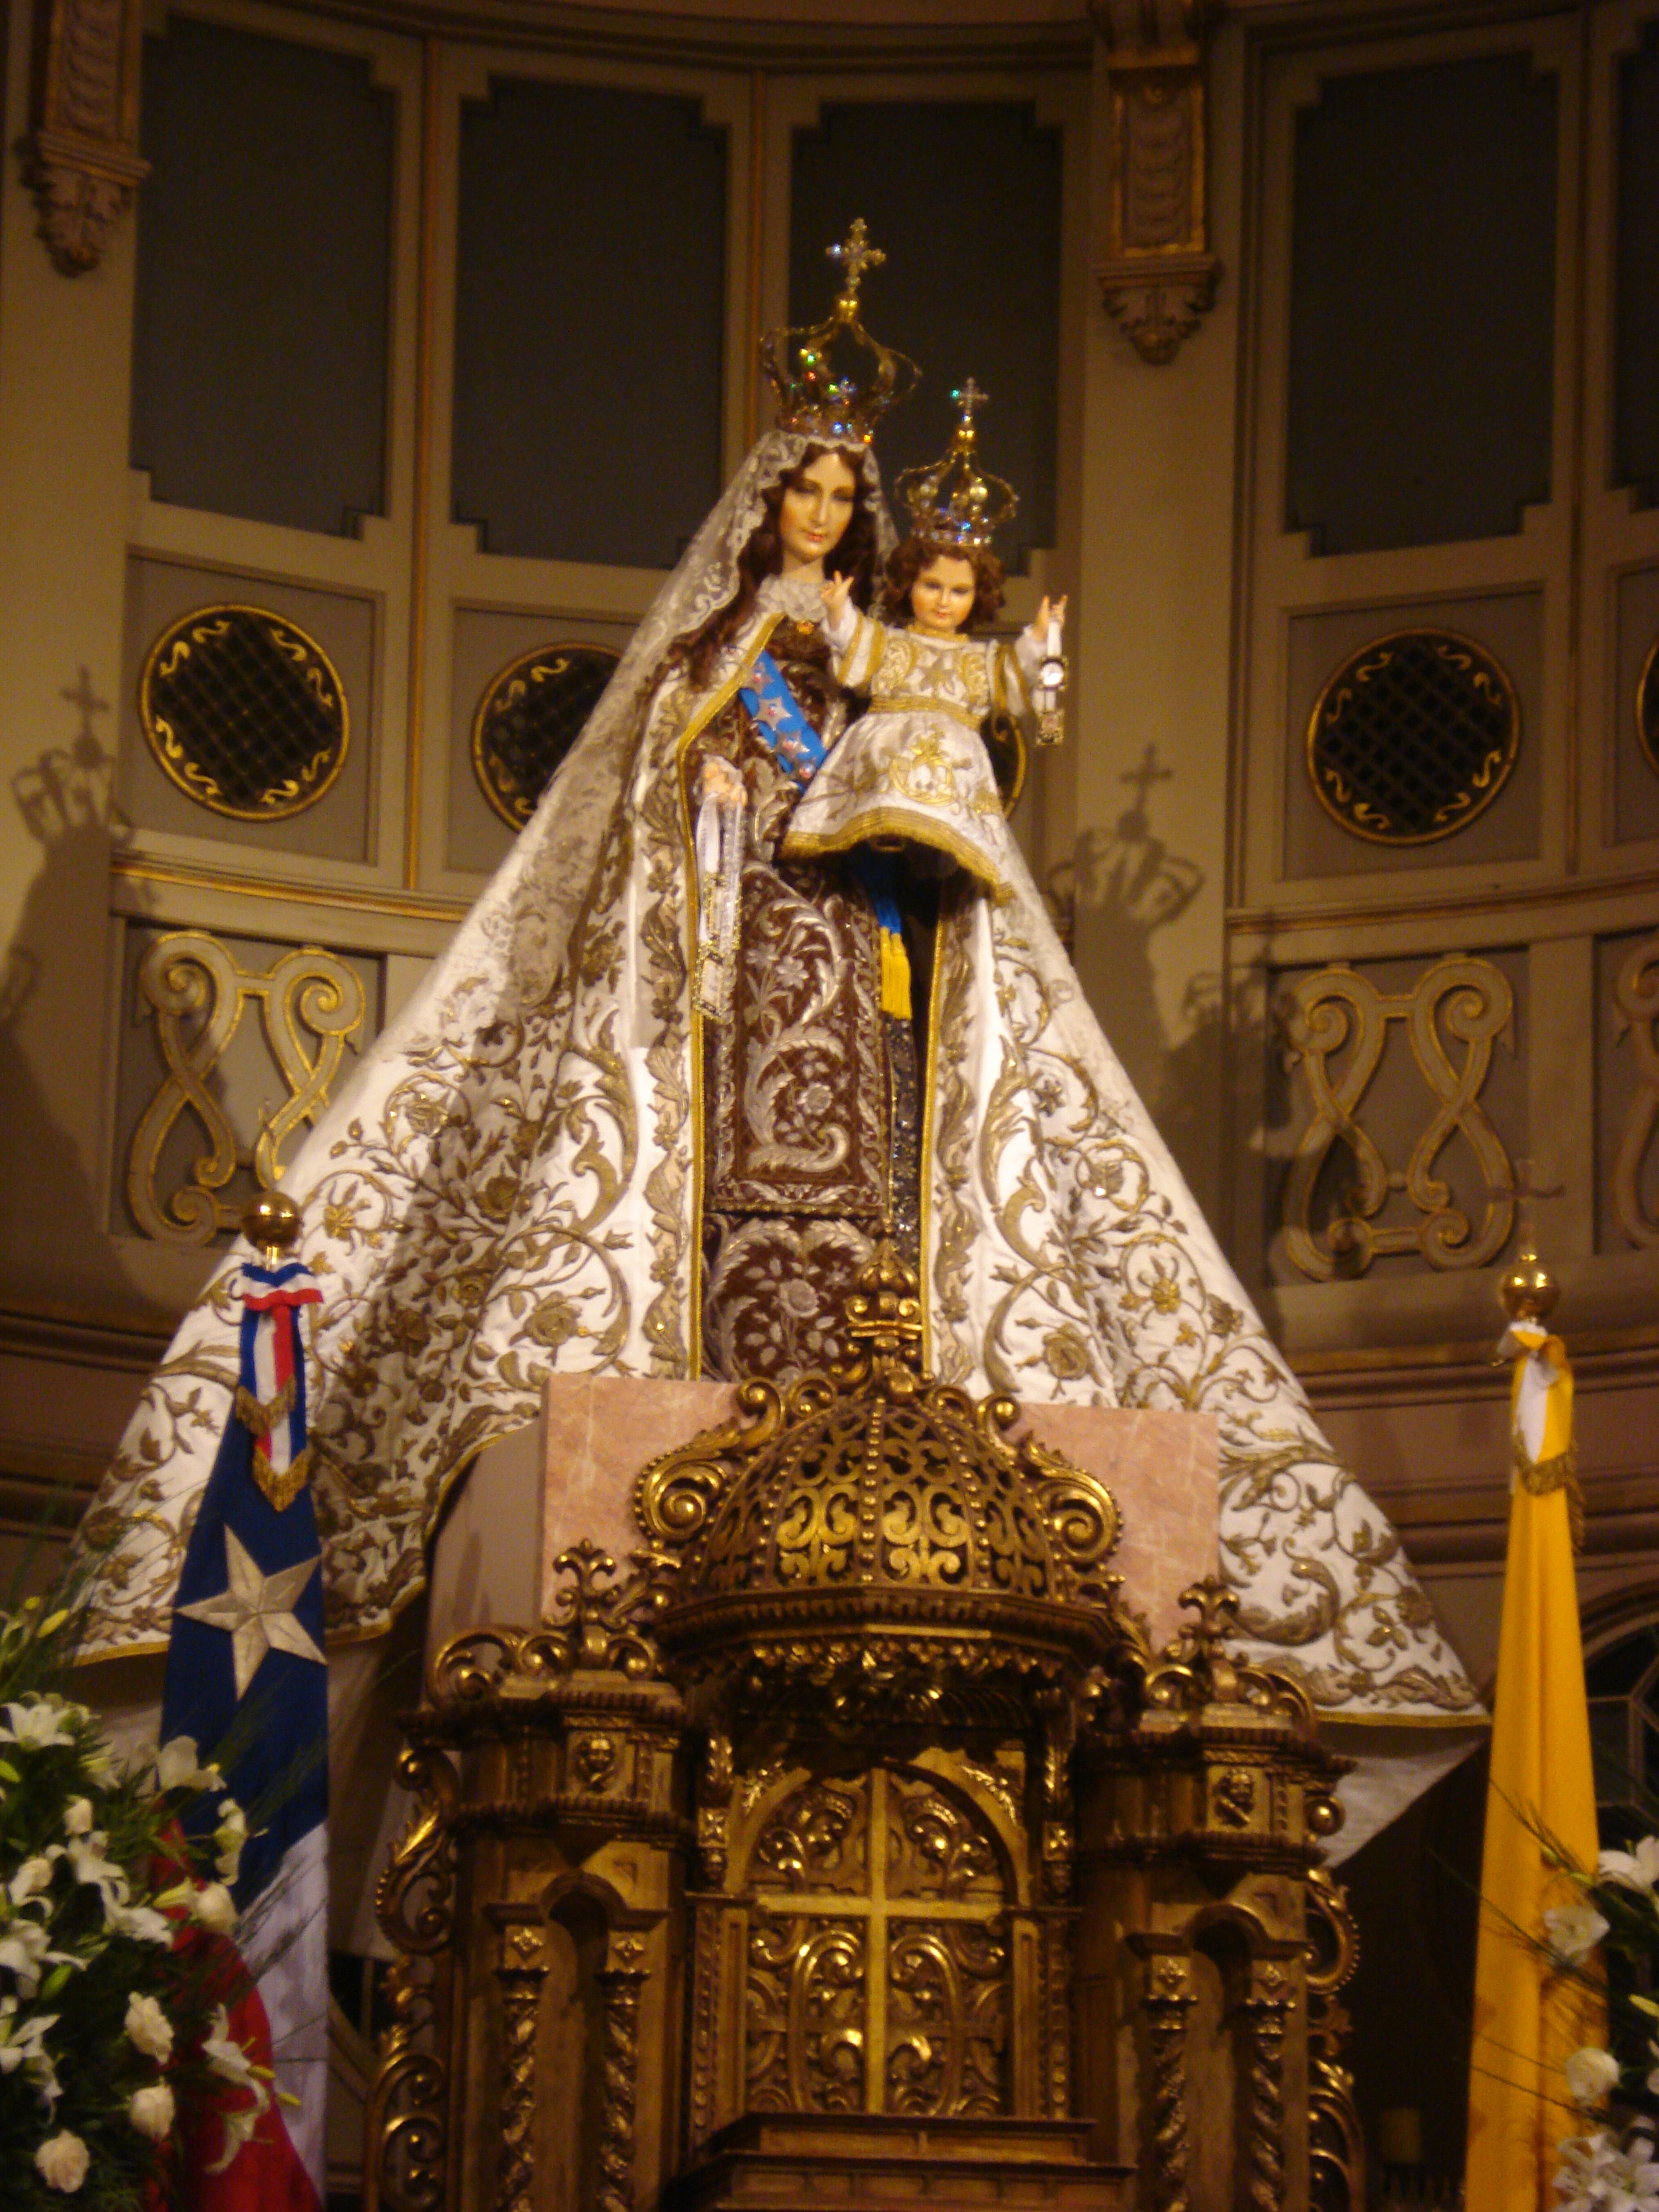 https://i1.wp.com/upload.wikimedia.org/wikipedia/commons/1/18/Virgen_del_Carmen_Catedral_Metropolitana.JPG